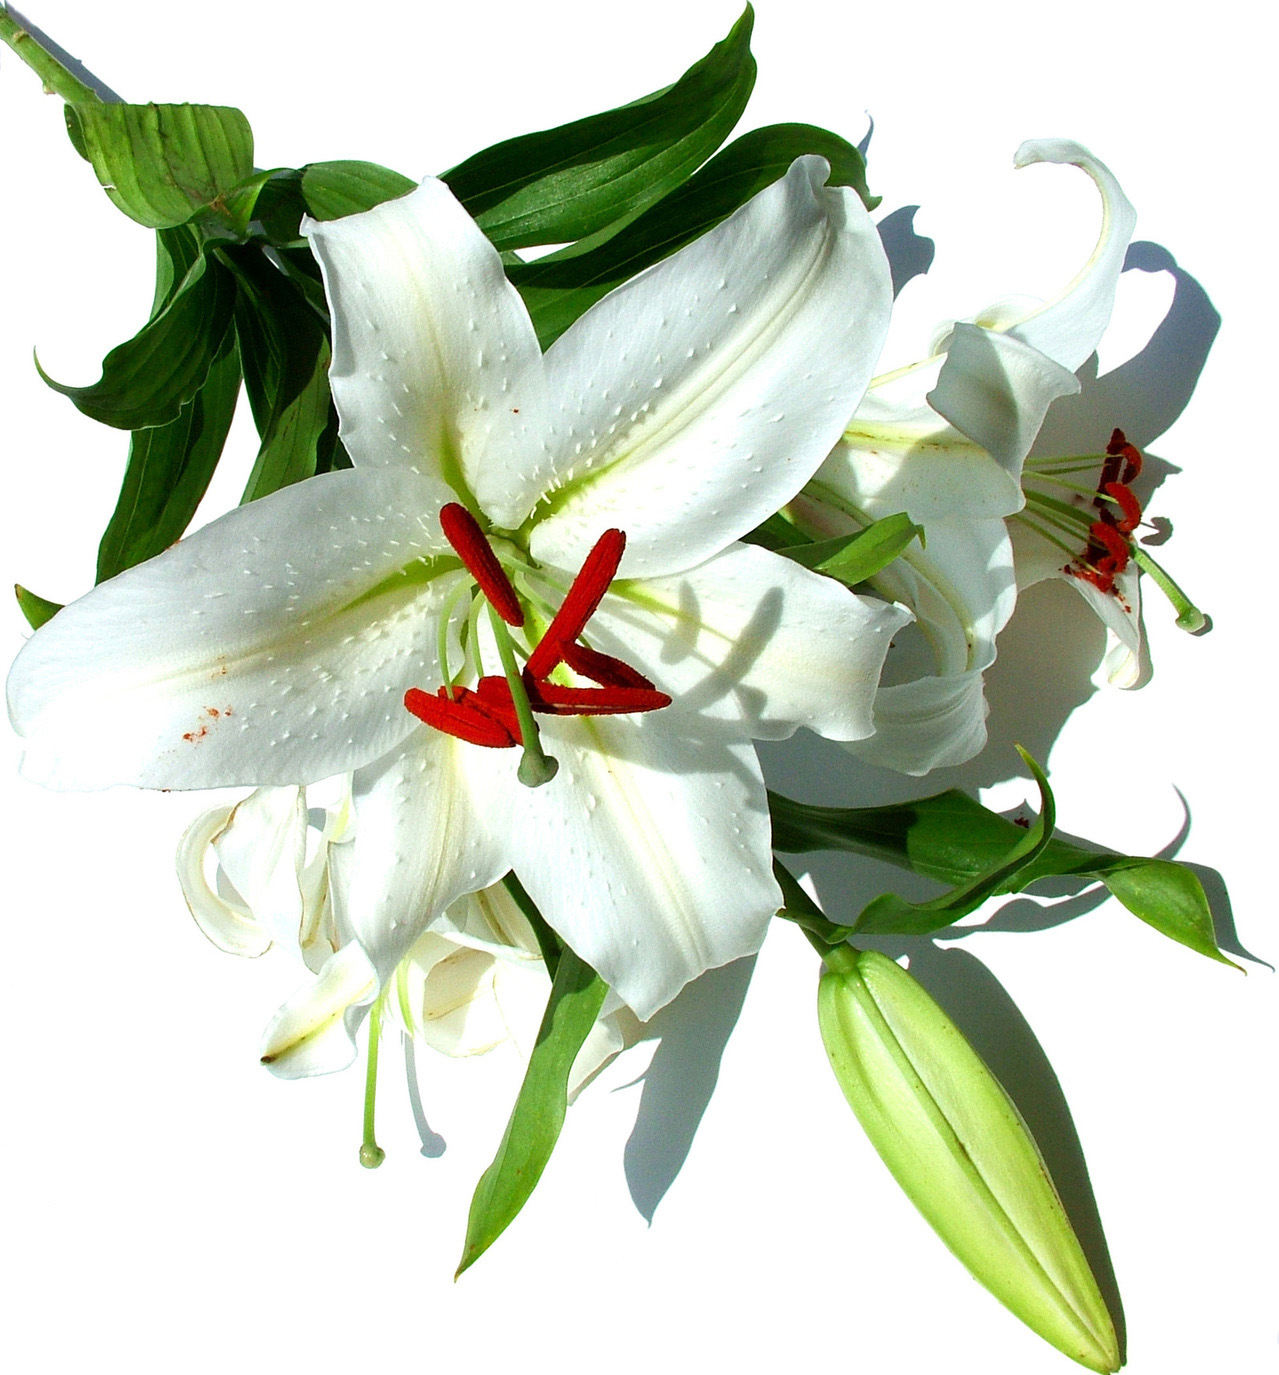 Lillies are Poisonous